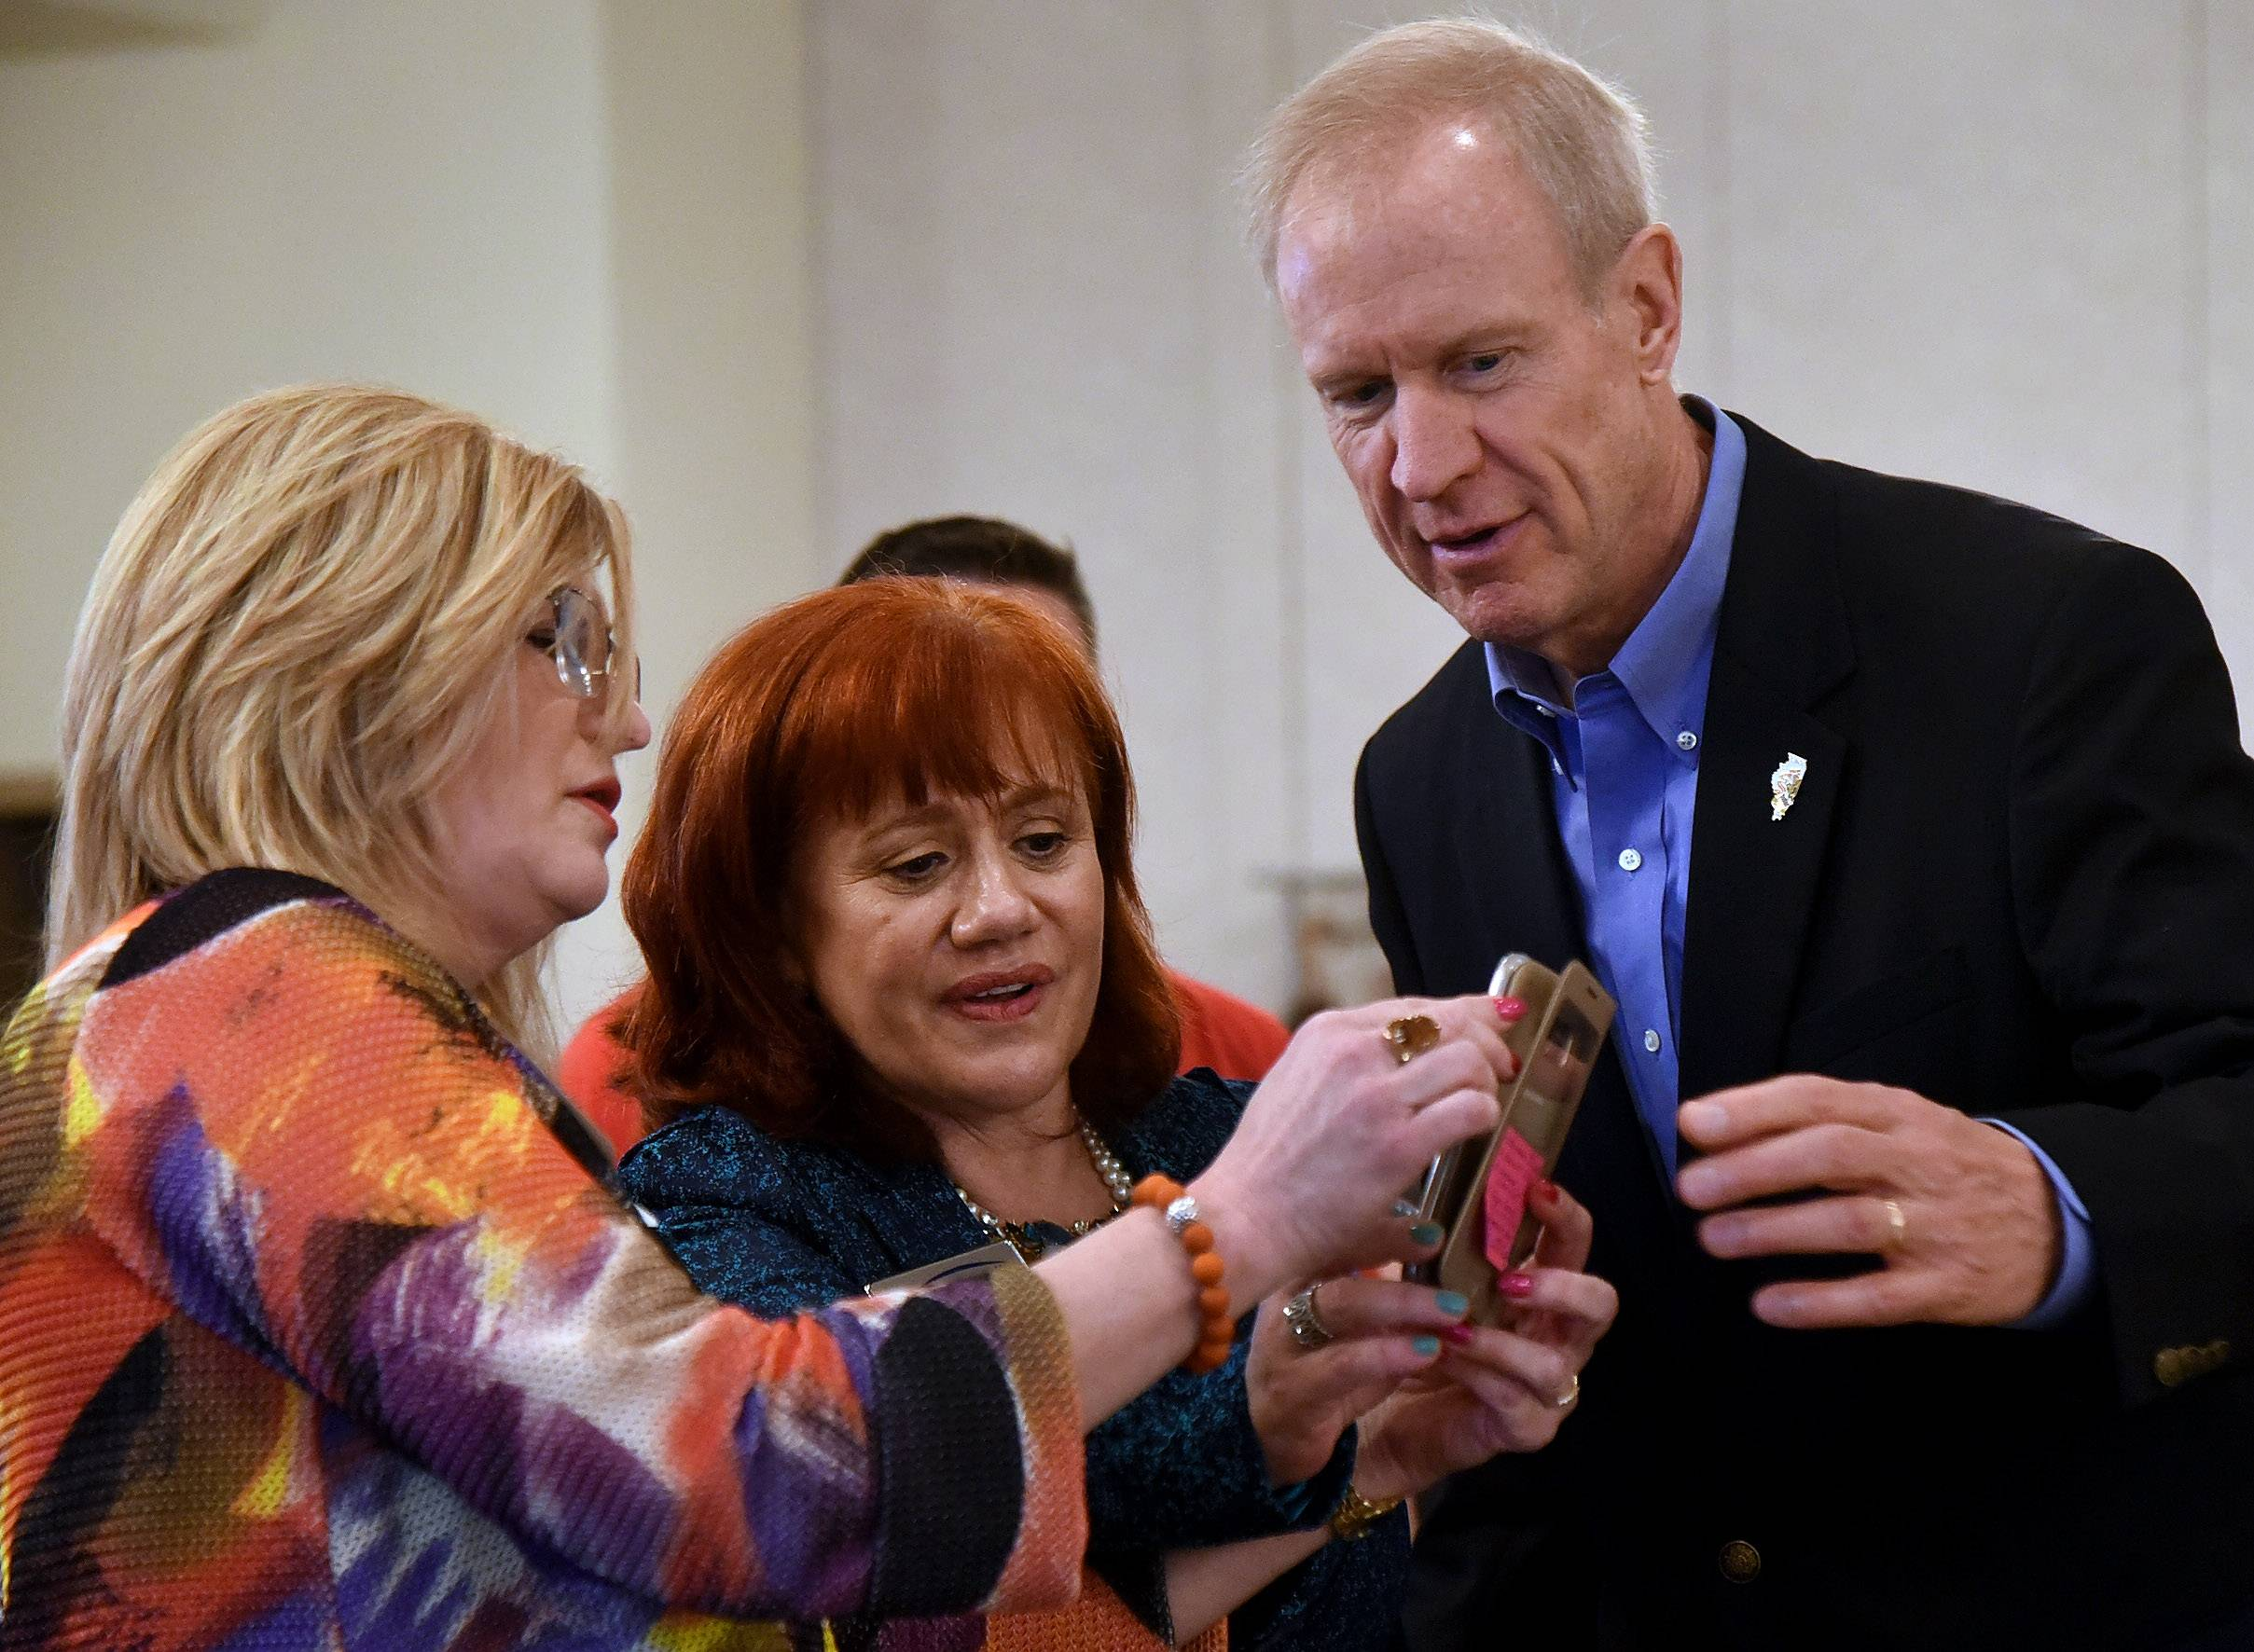 Kerry Jennejahn of Fifth Third Bank of Itasca, left, and Elizabeth Trezzi of the Bensenville Chamber of Commerce try for a selfie with Gov. Bruce Rauner, who spoke to the GOA Regional Business Association at a lunch Wednesday at Belvedere Banquets in Elk Grove Village.